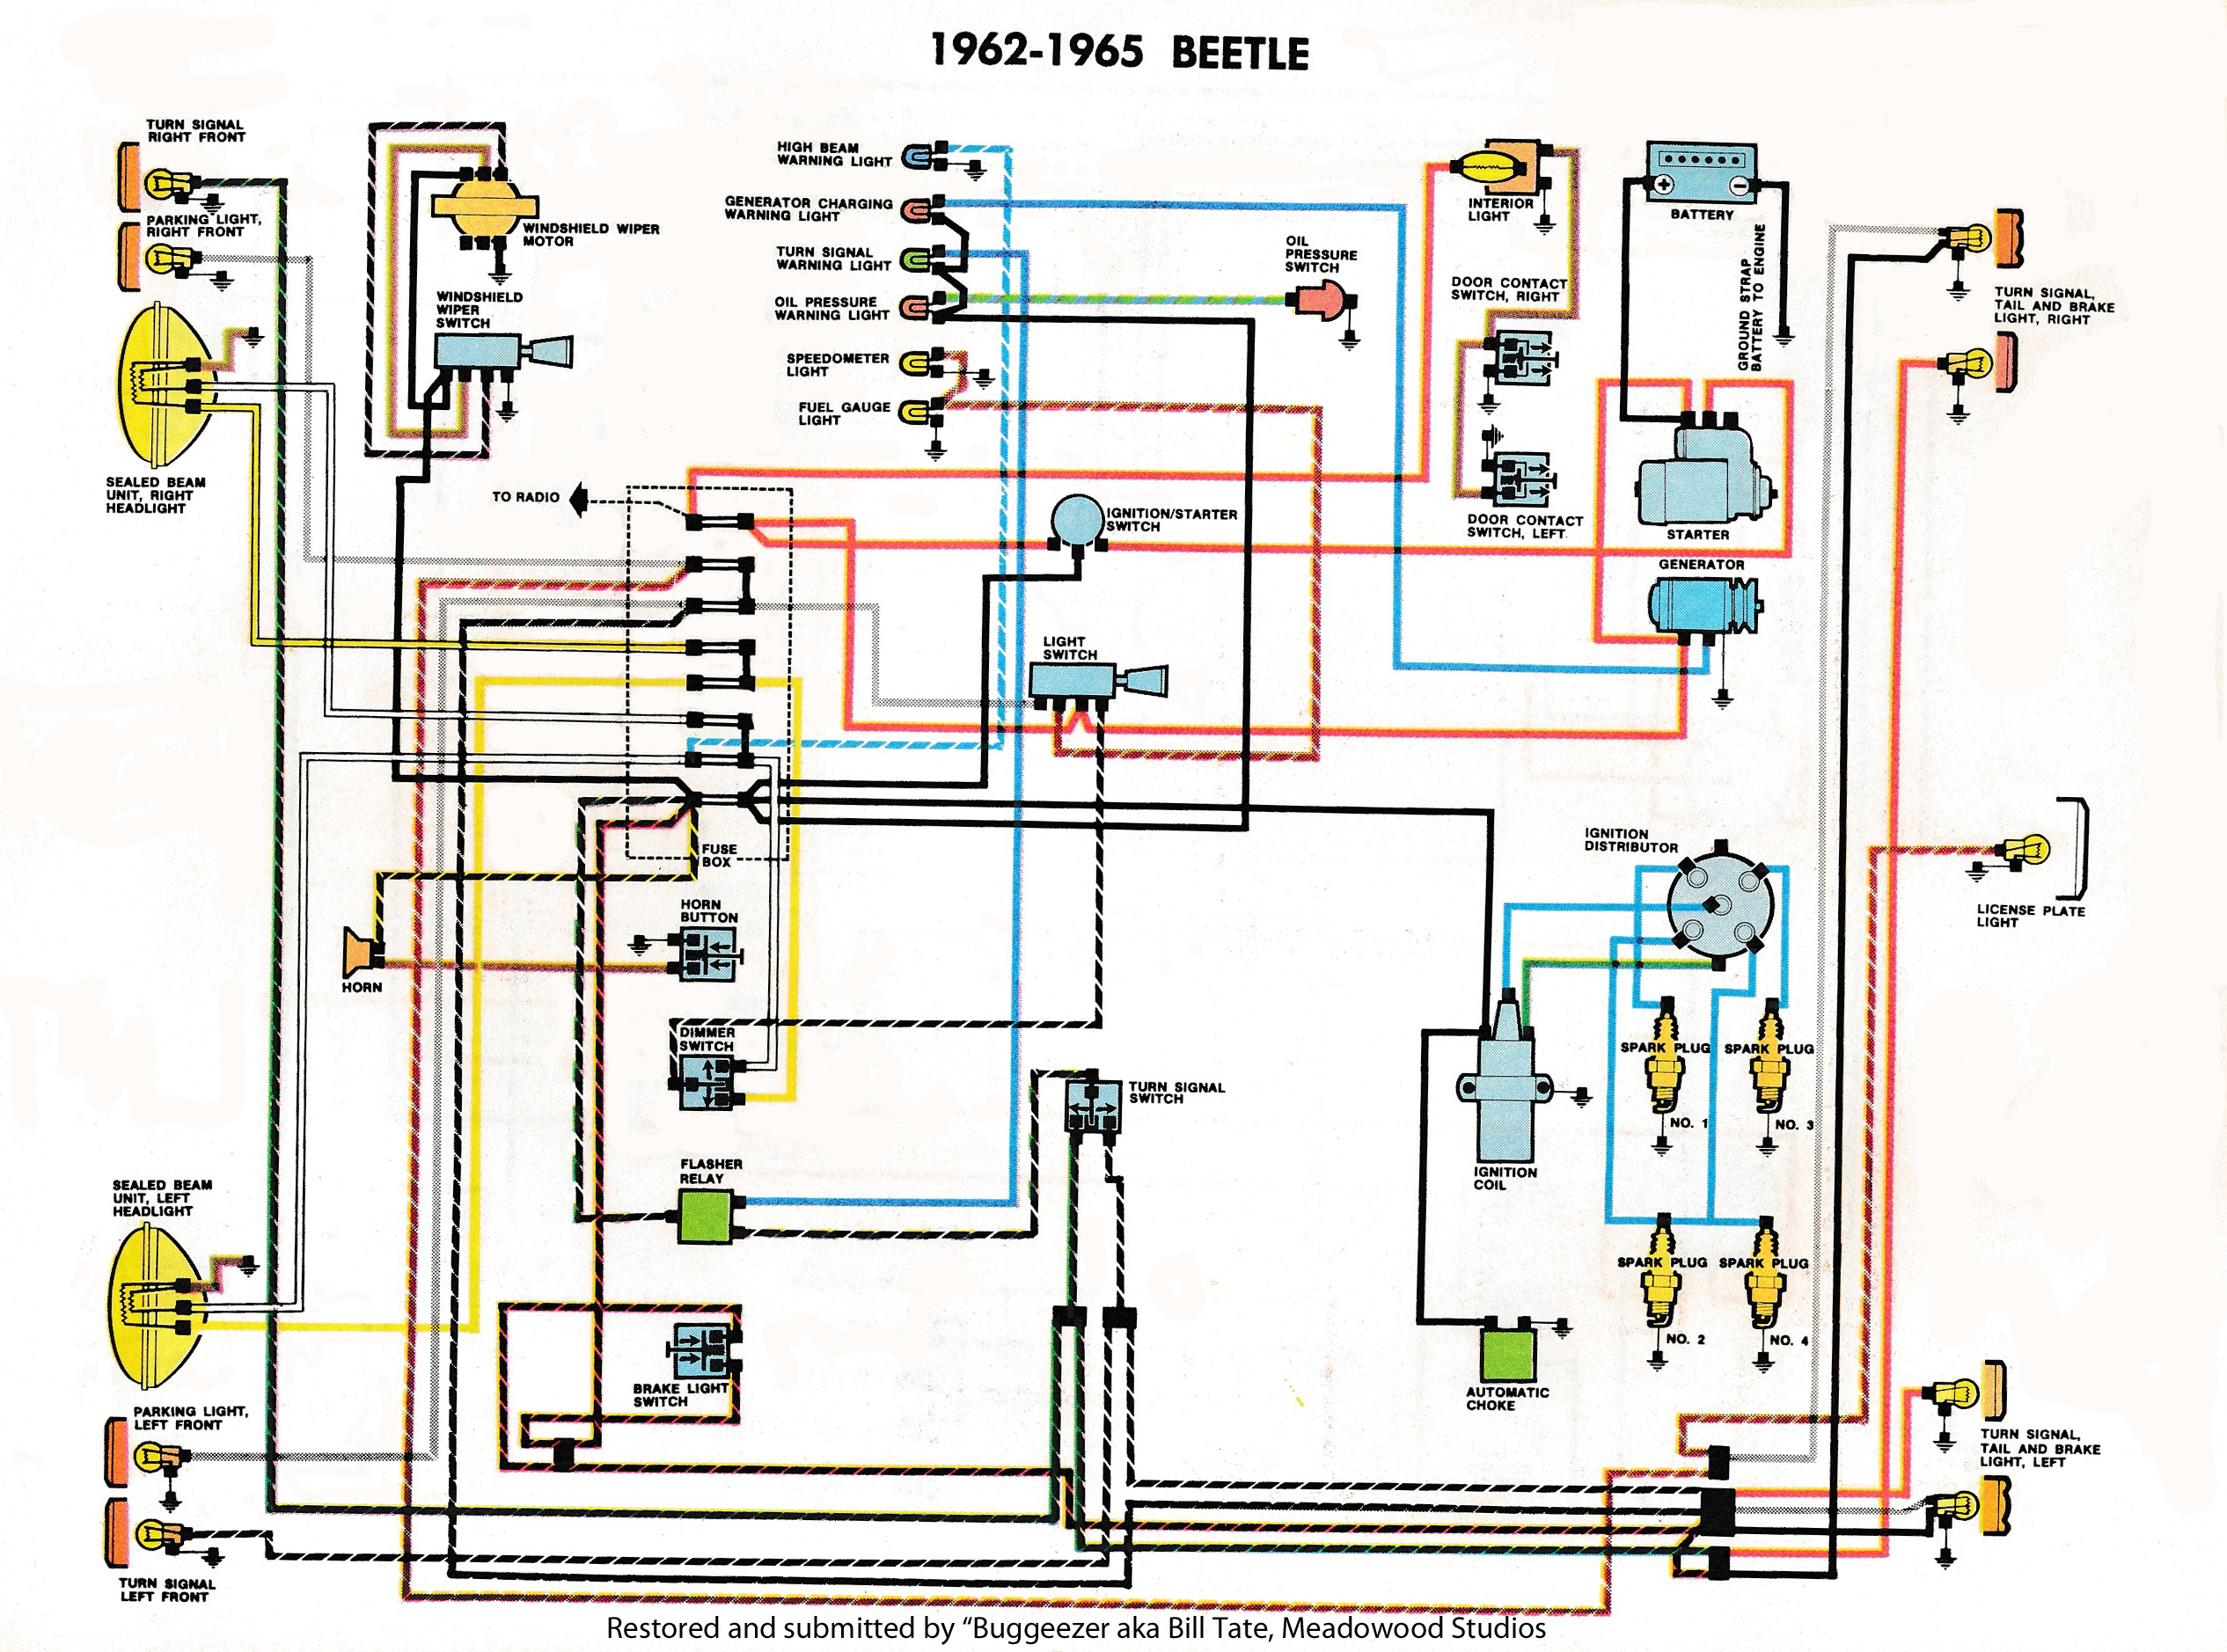 1970 Volkswagen Bug Wiring Diagrams - Custom Wiring Diagram • on engine schematics, plumbing schematics, transmission schematics, transformer schematics, amplifier schematics, wire schematics, ford diagrams schematics, circuit schematics, electronics schematics, ignition schematics, generator schematics, piping schematics, ecu schematics, ductwork schematics, motor schematics, computer schematics, electrical schematics, tube amp schematics, engineering schematics, design schematics,